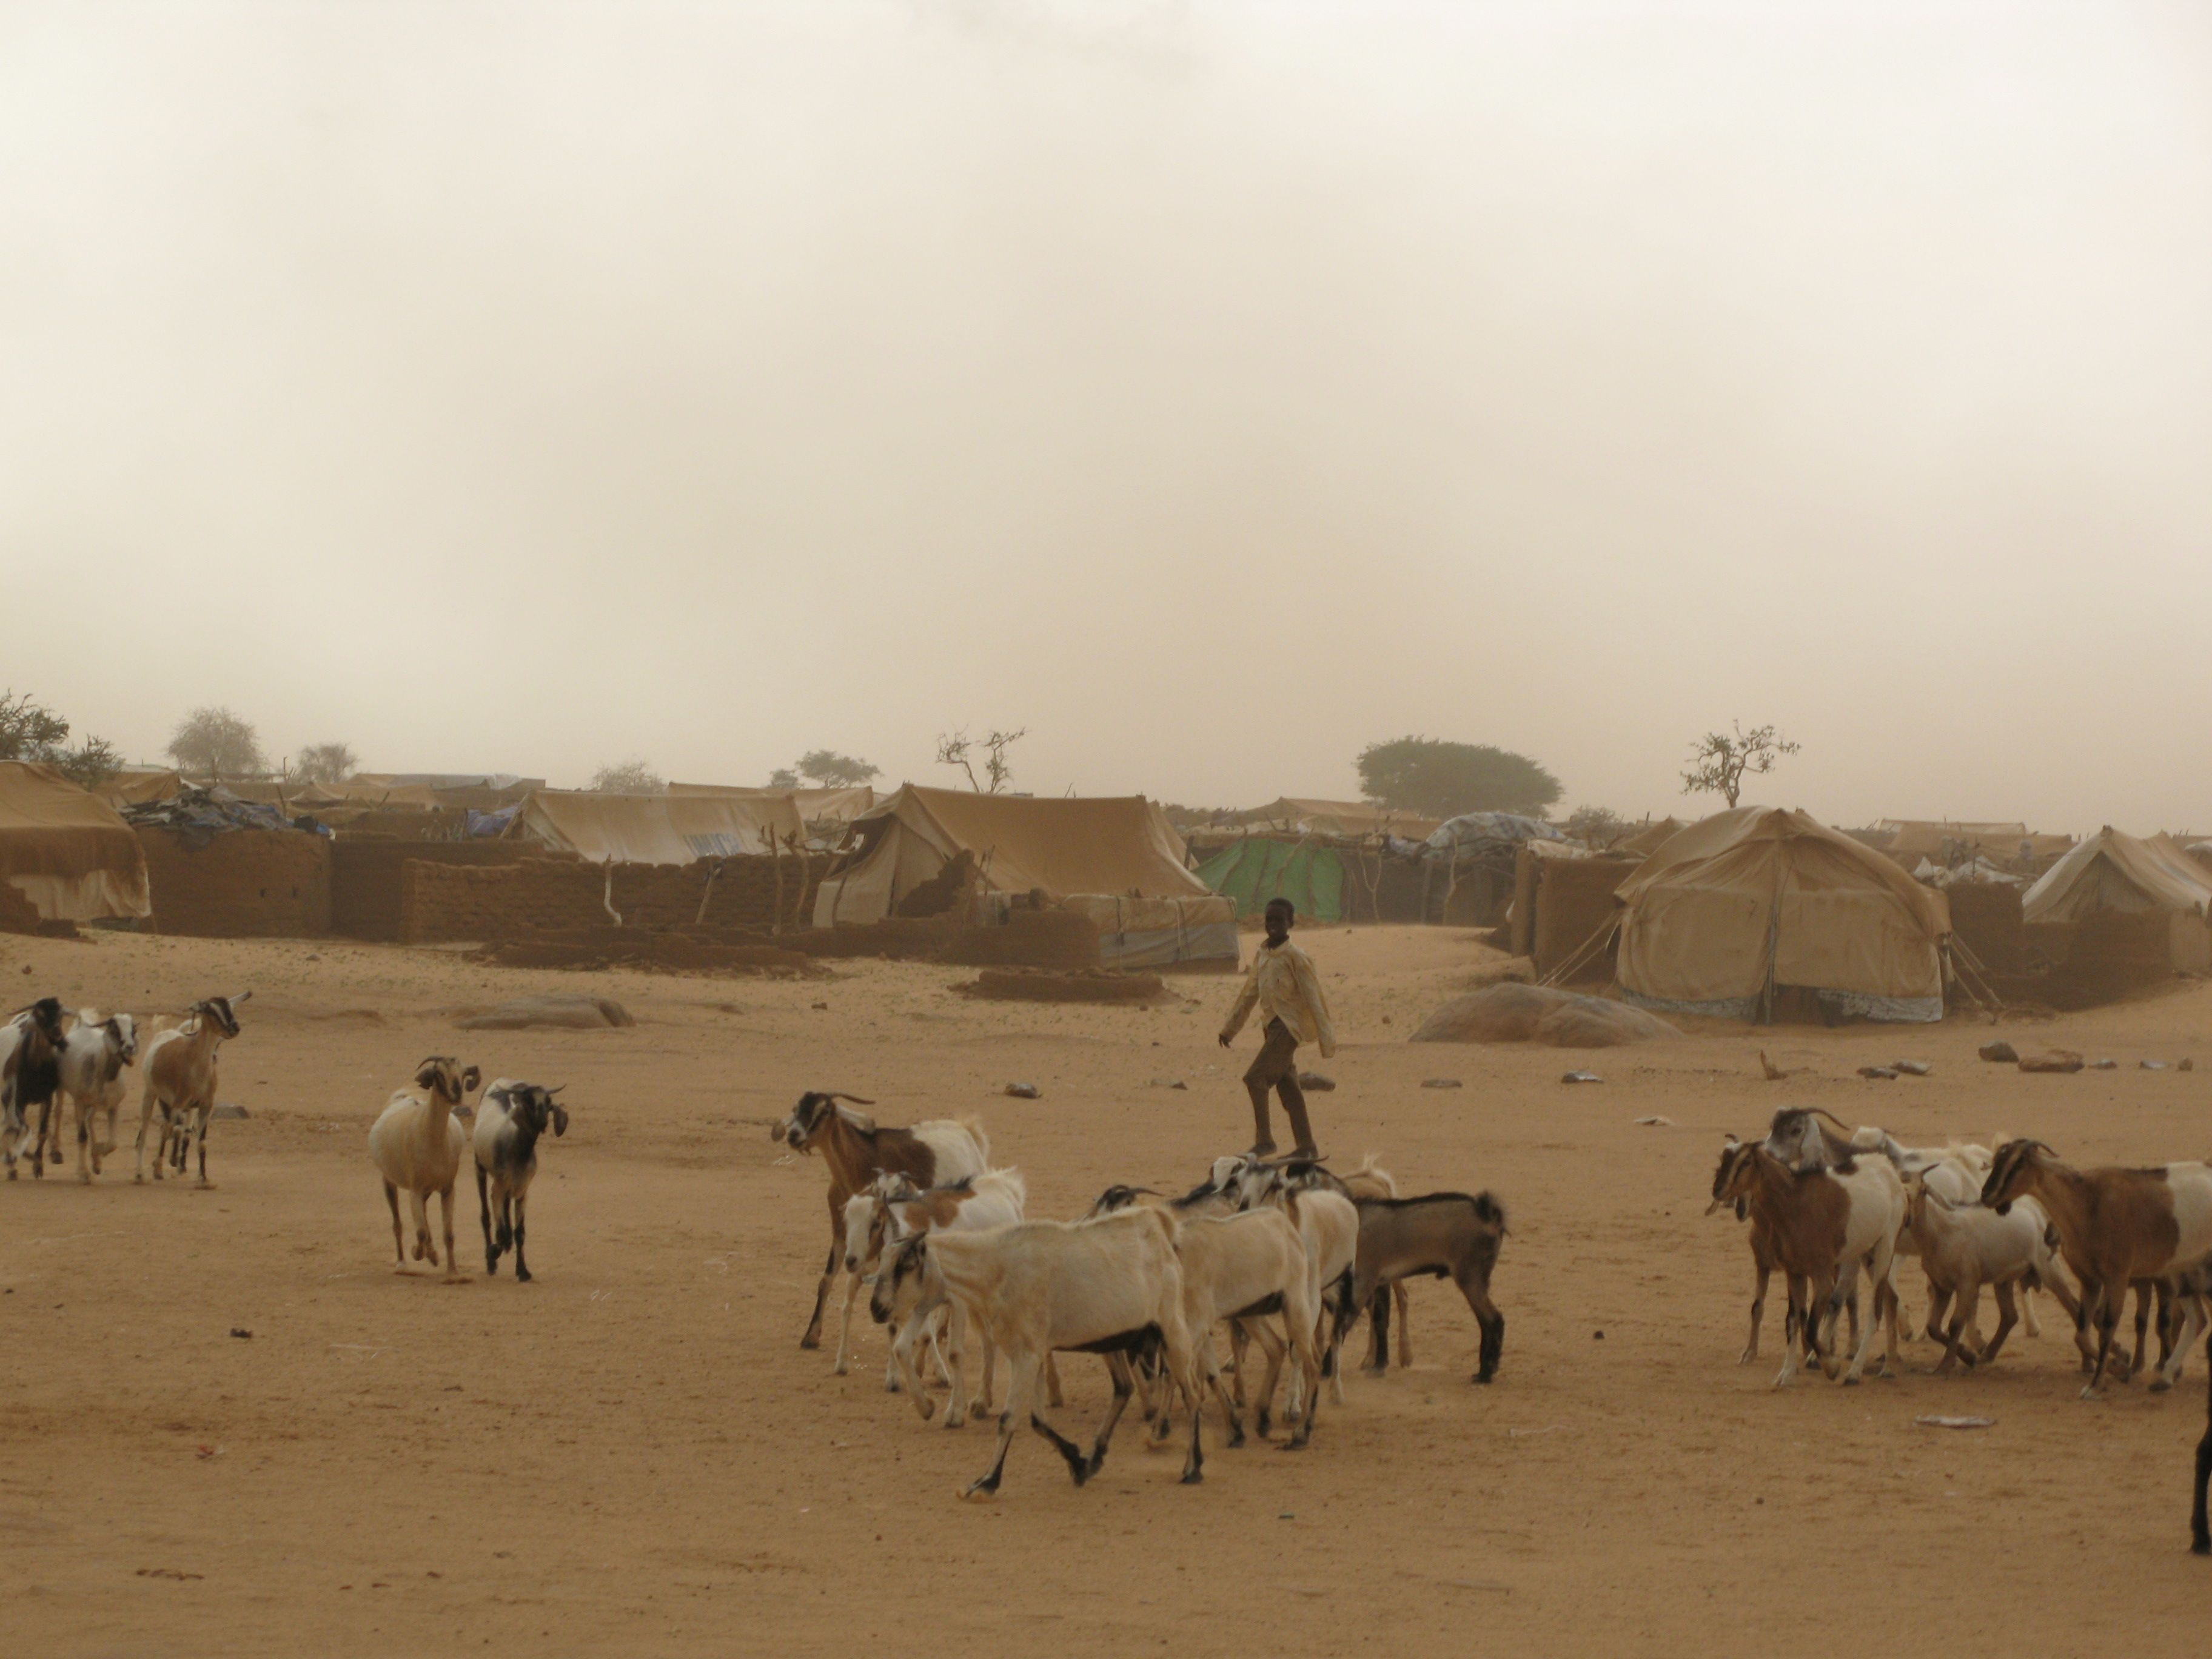 Goats wander along the outskirts of a camp for internally displaced persons (IDPs) along the border of Chad and Darfur